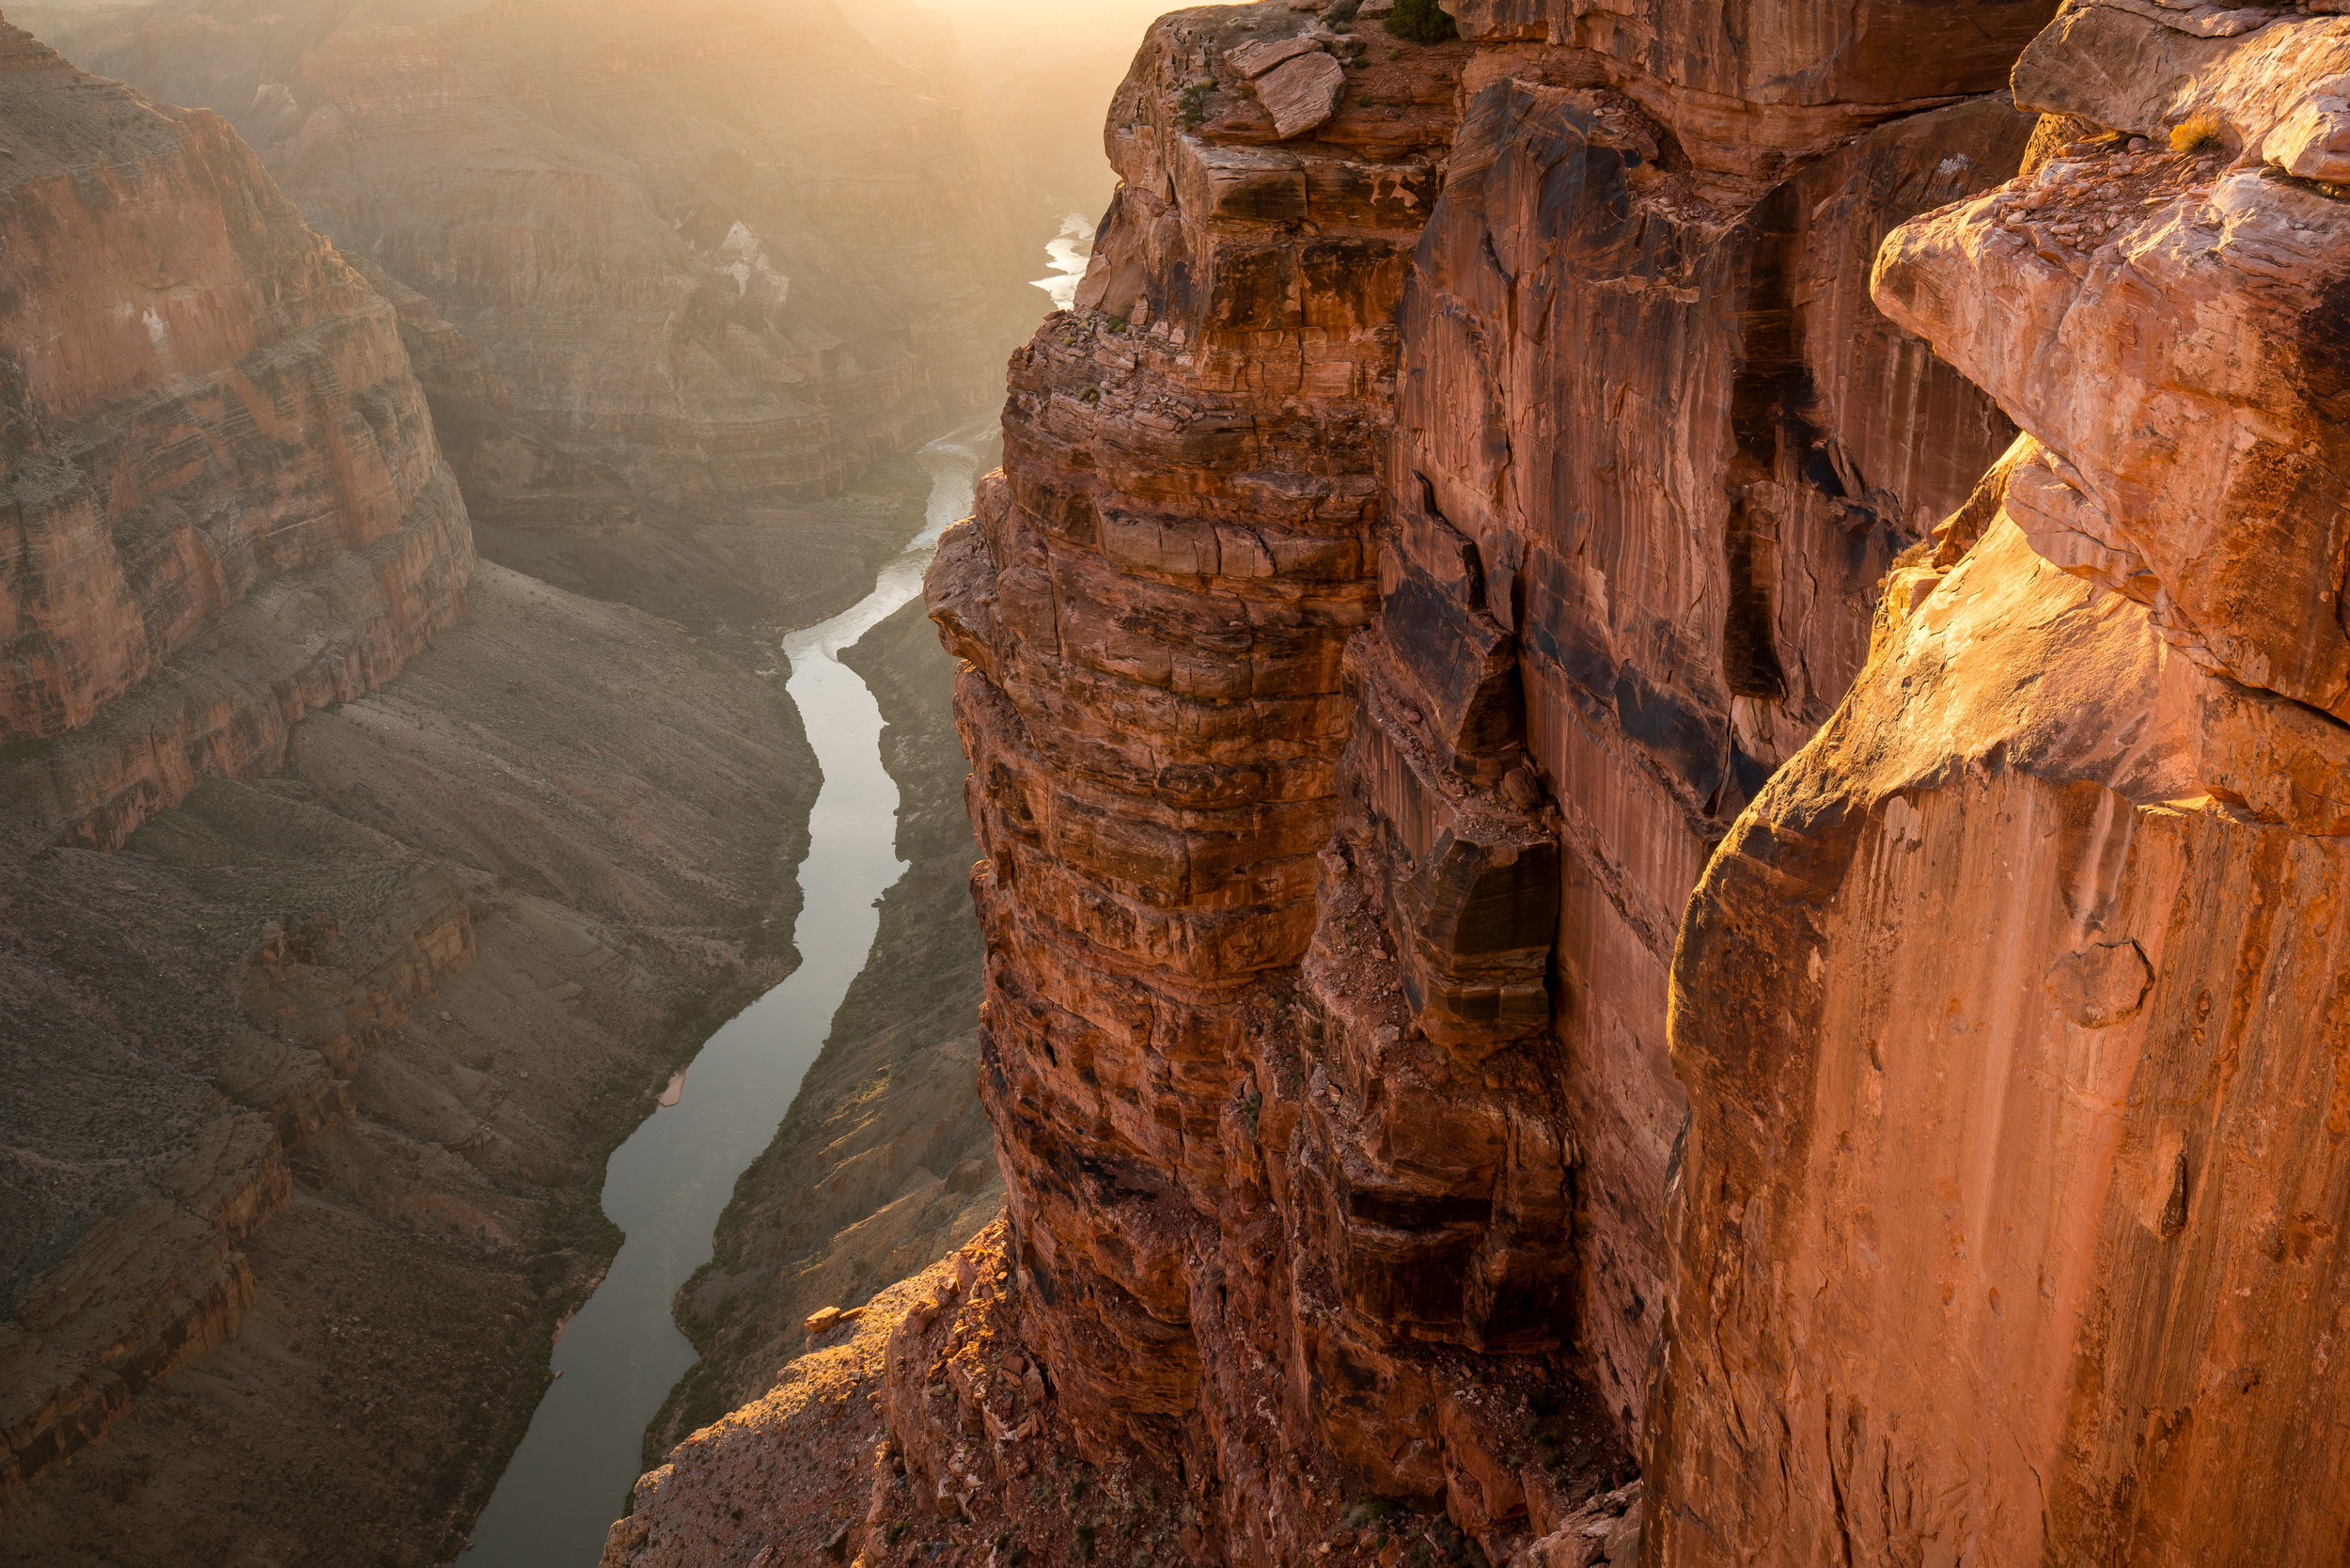 Landscape: Sunset over the Colorado River as it continues to carve deeper into the sandstone of the Grand Canyon, Grand Canyon National Park